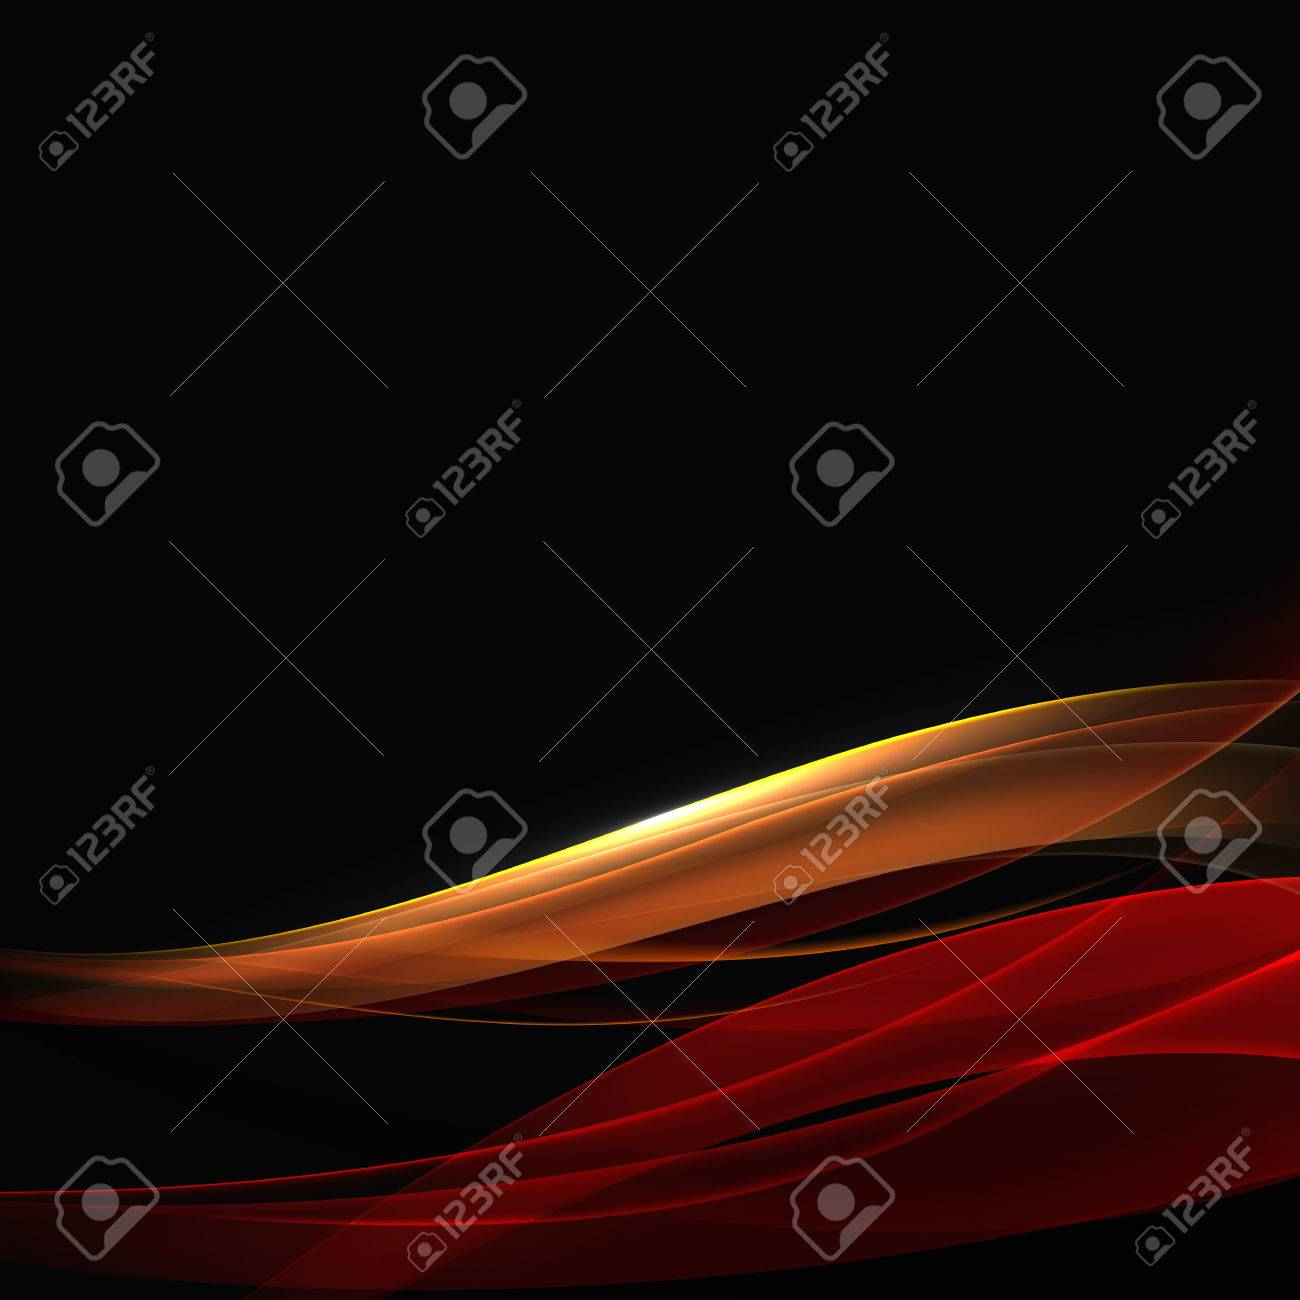 Abstract Background. Bright Transparent Waves on the Black Background - 56642529